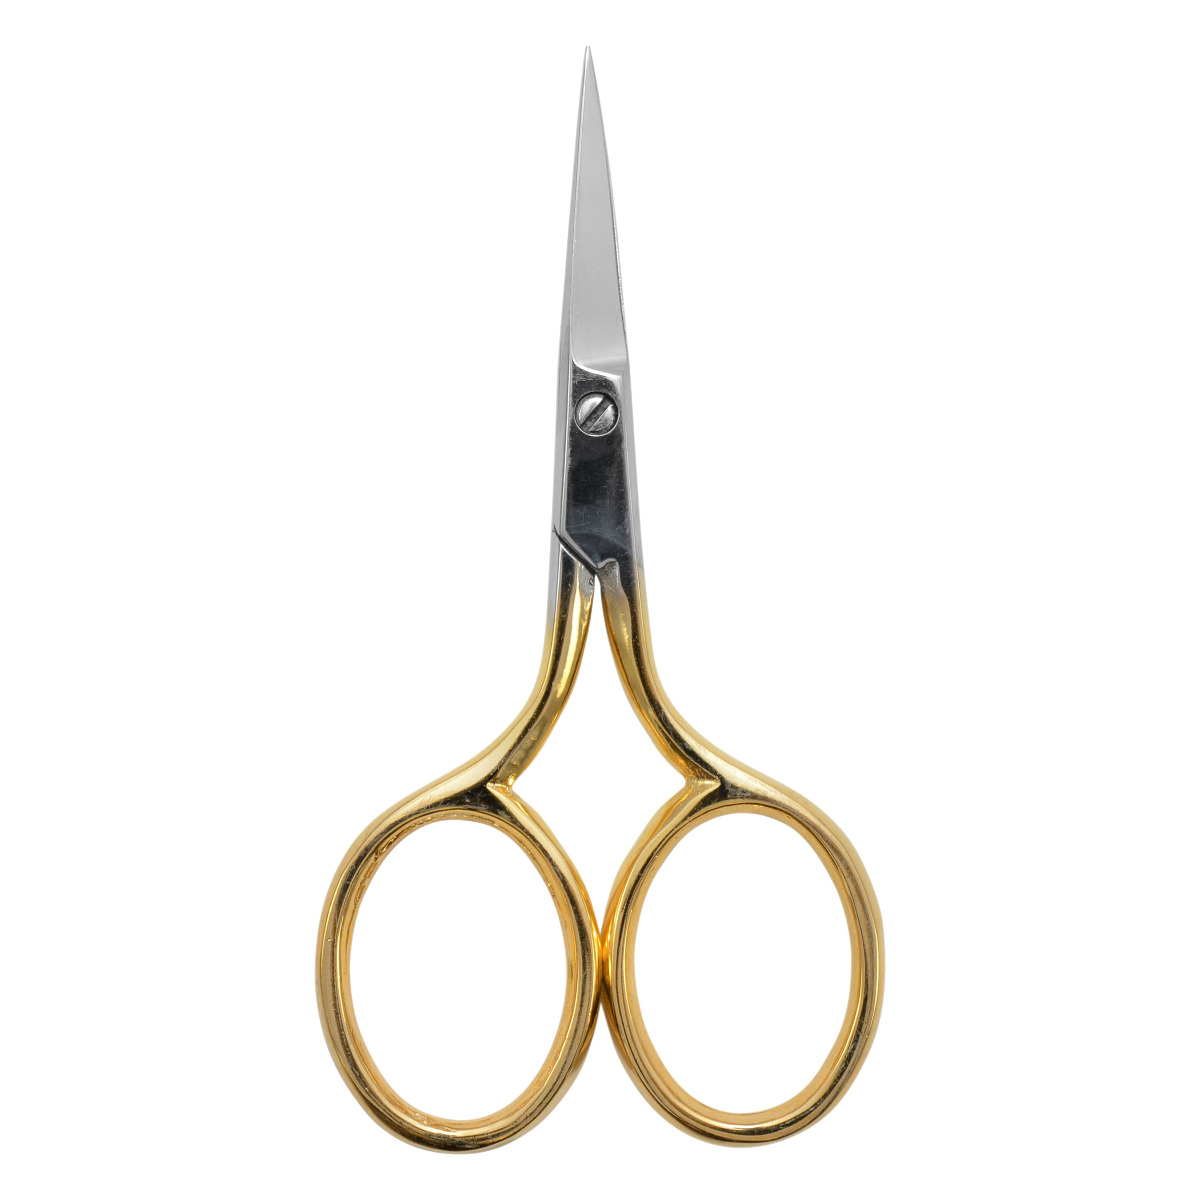 "Westcott 2.5"" Embroidery Scissors, Gold (13774)"